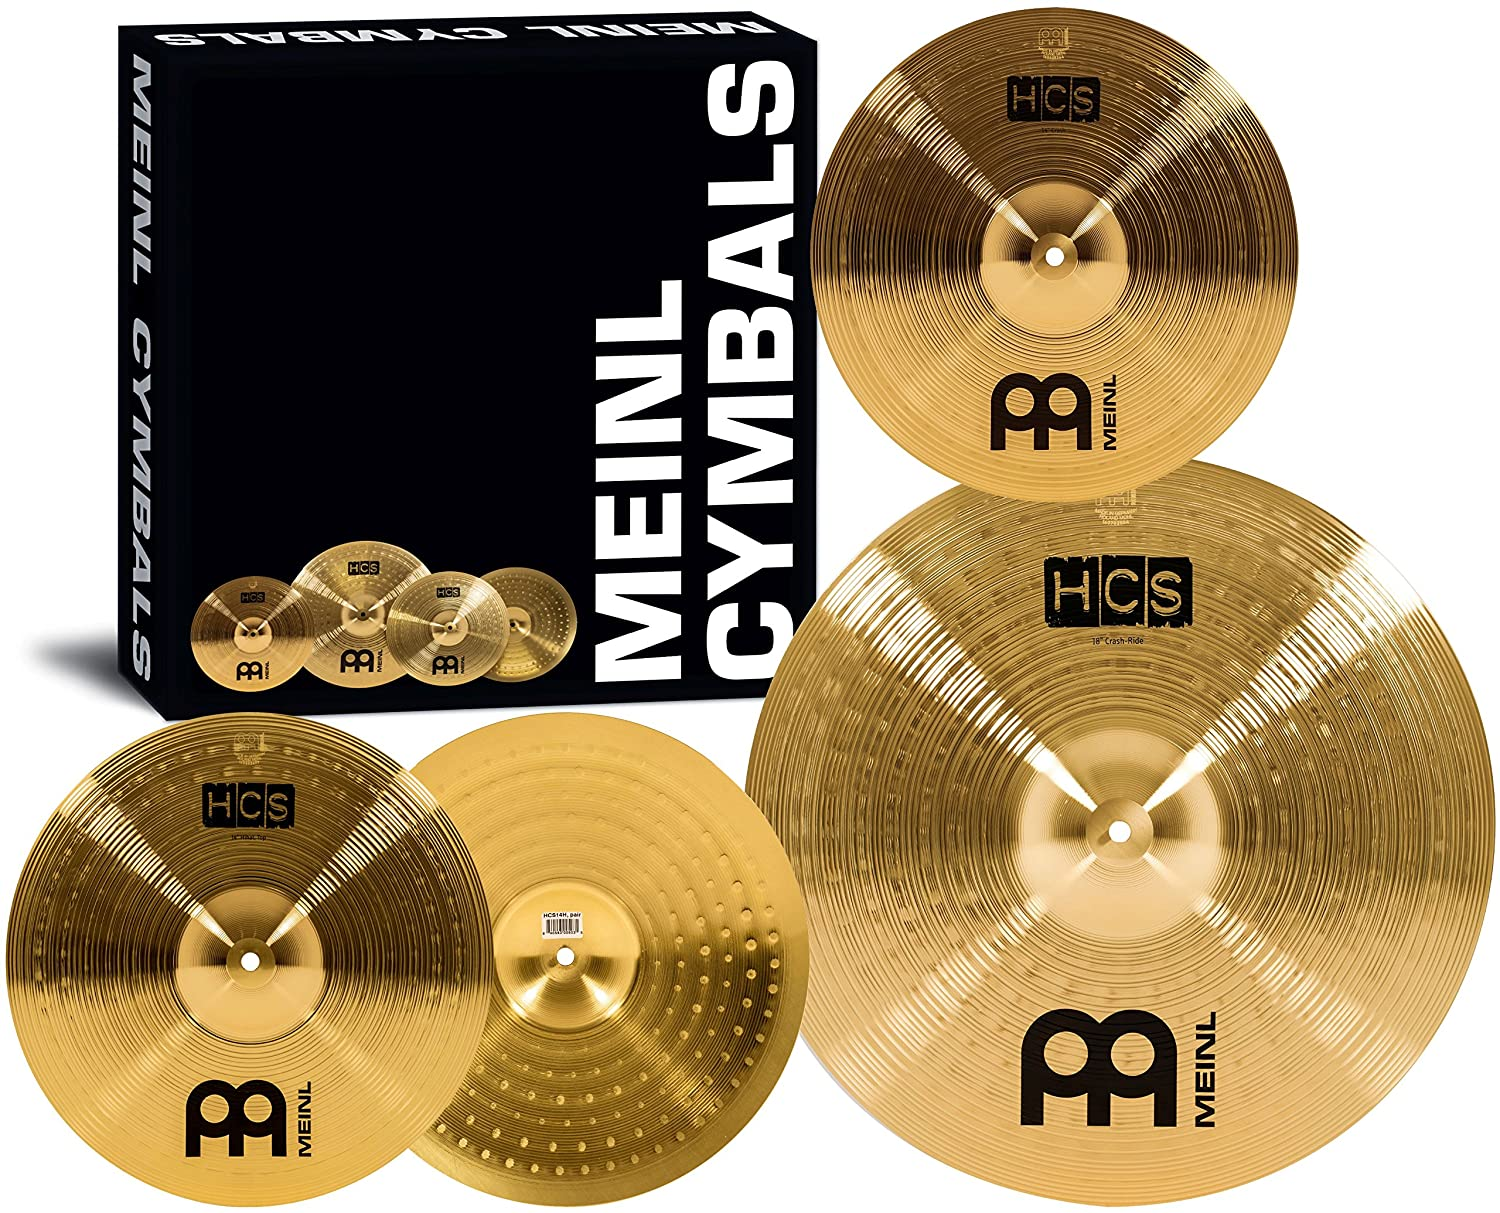 """Meinl Cymbal Set Box Pack with 14"""" Hihats, 18"""" Crash/Ride, Plus a FREE 14"""" Crash – HCS Traditional Finish Brass – Made In Germany, TWO-YEAR WARRANTY (HCS1418+14C) 18"""" Crash/Ride Meinl USA L.C."""